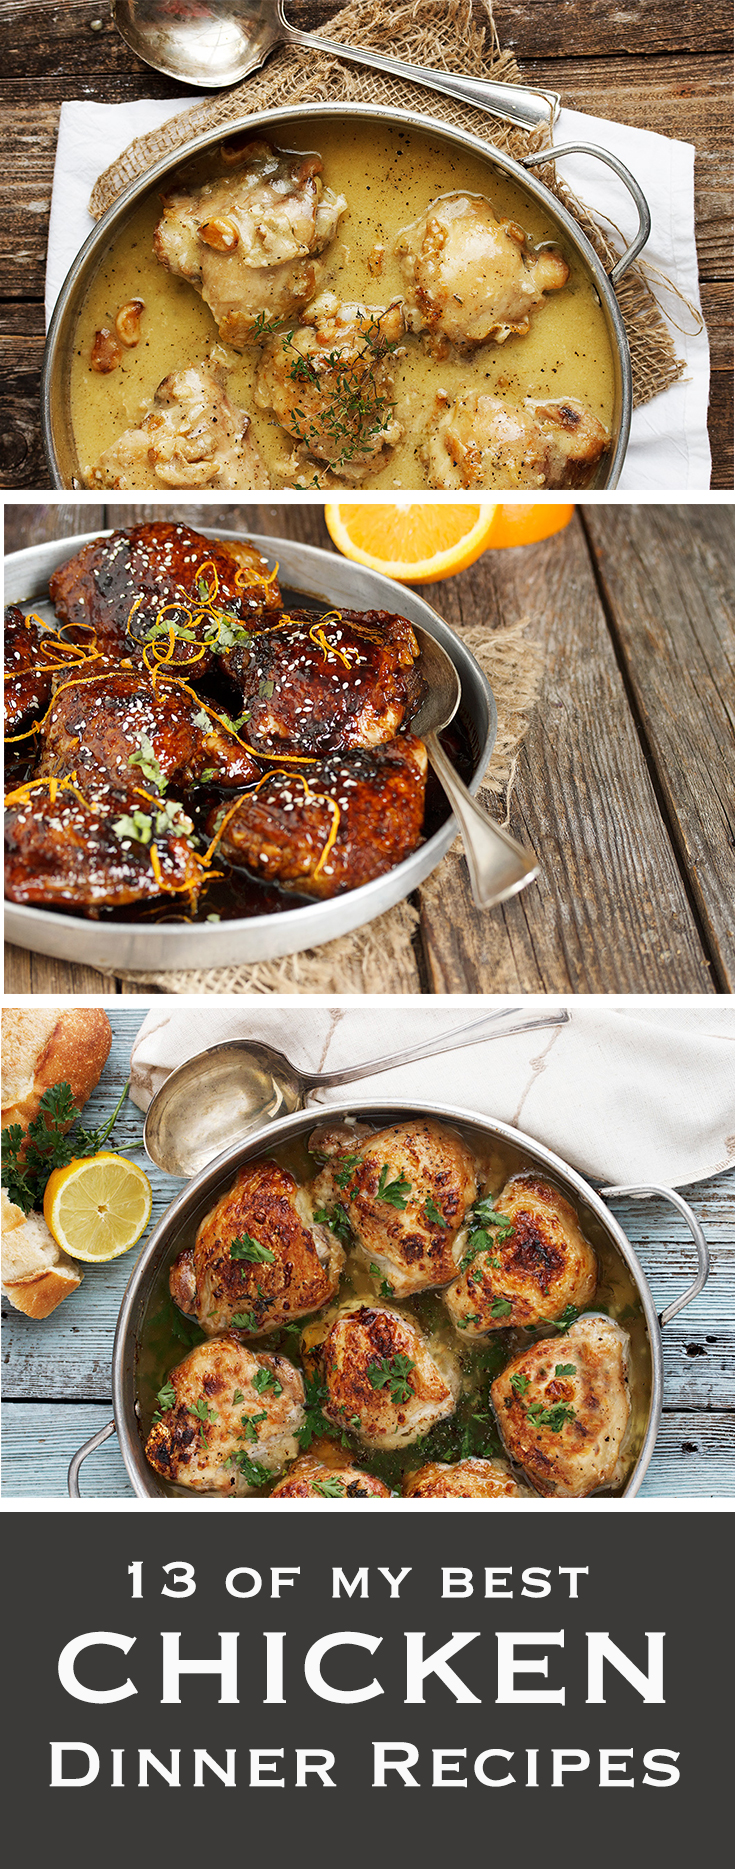 13 Best Chicken Dinner Recipes